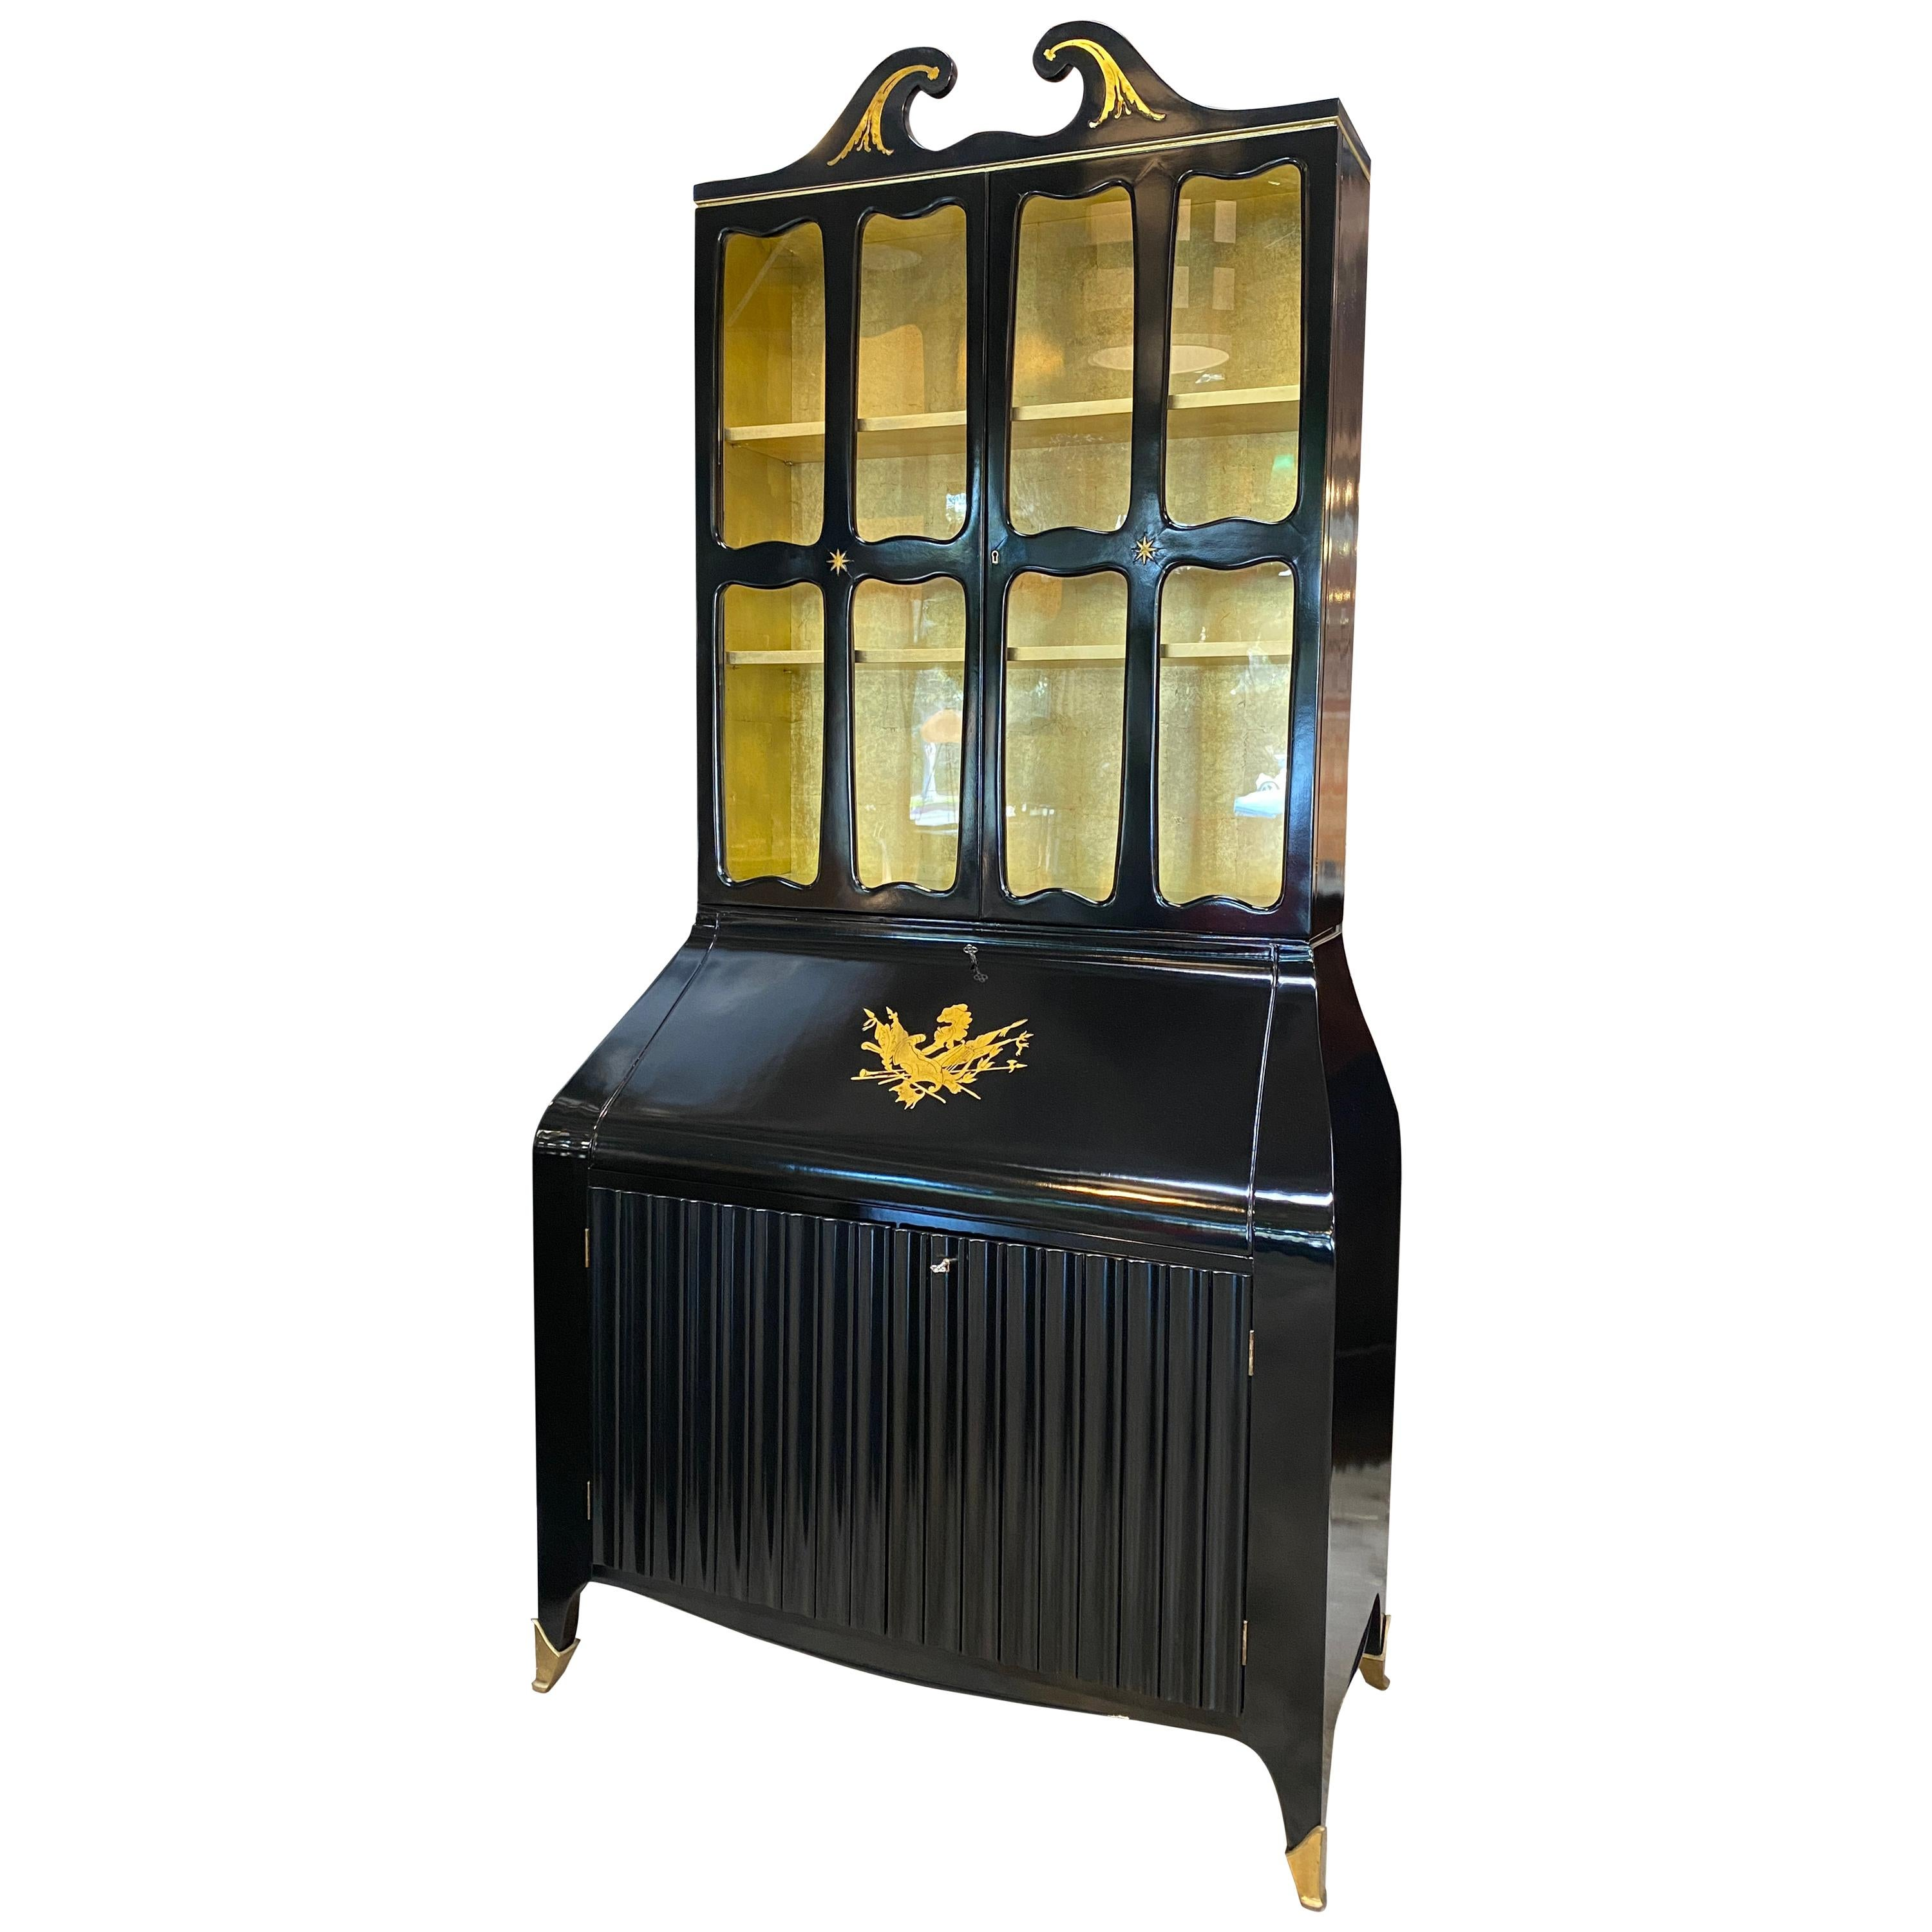 Paolo Buffa Credenza/Secretaires with Coat-of-Arms in Brass, Italy, 1950s